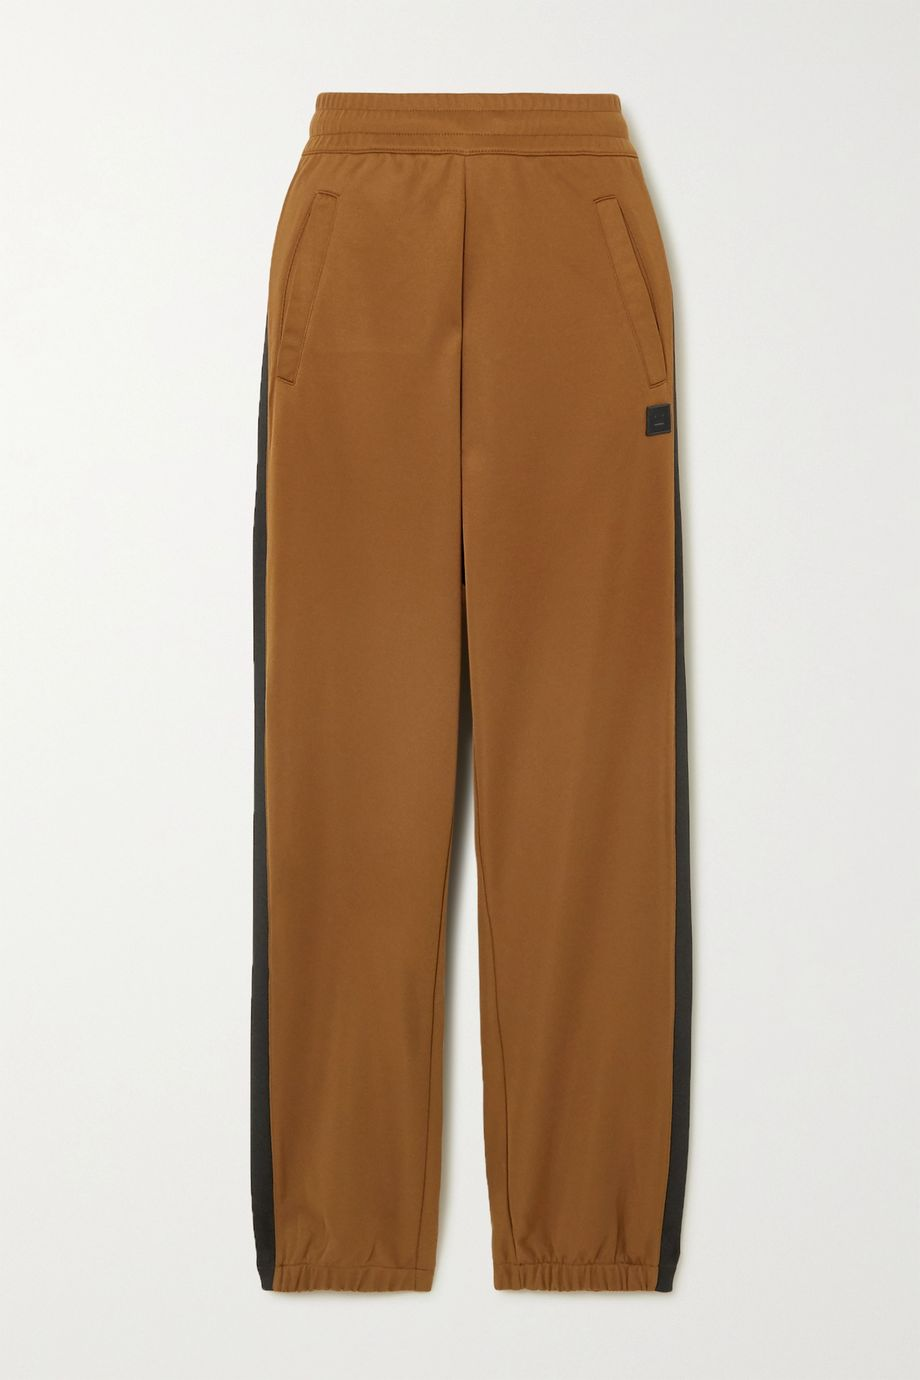 Acne Studios Jersey track pants